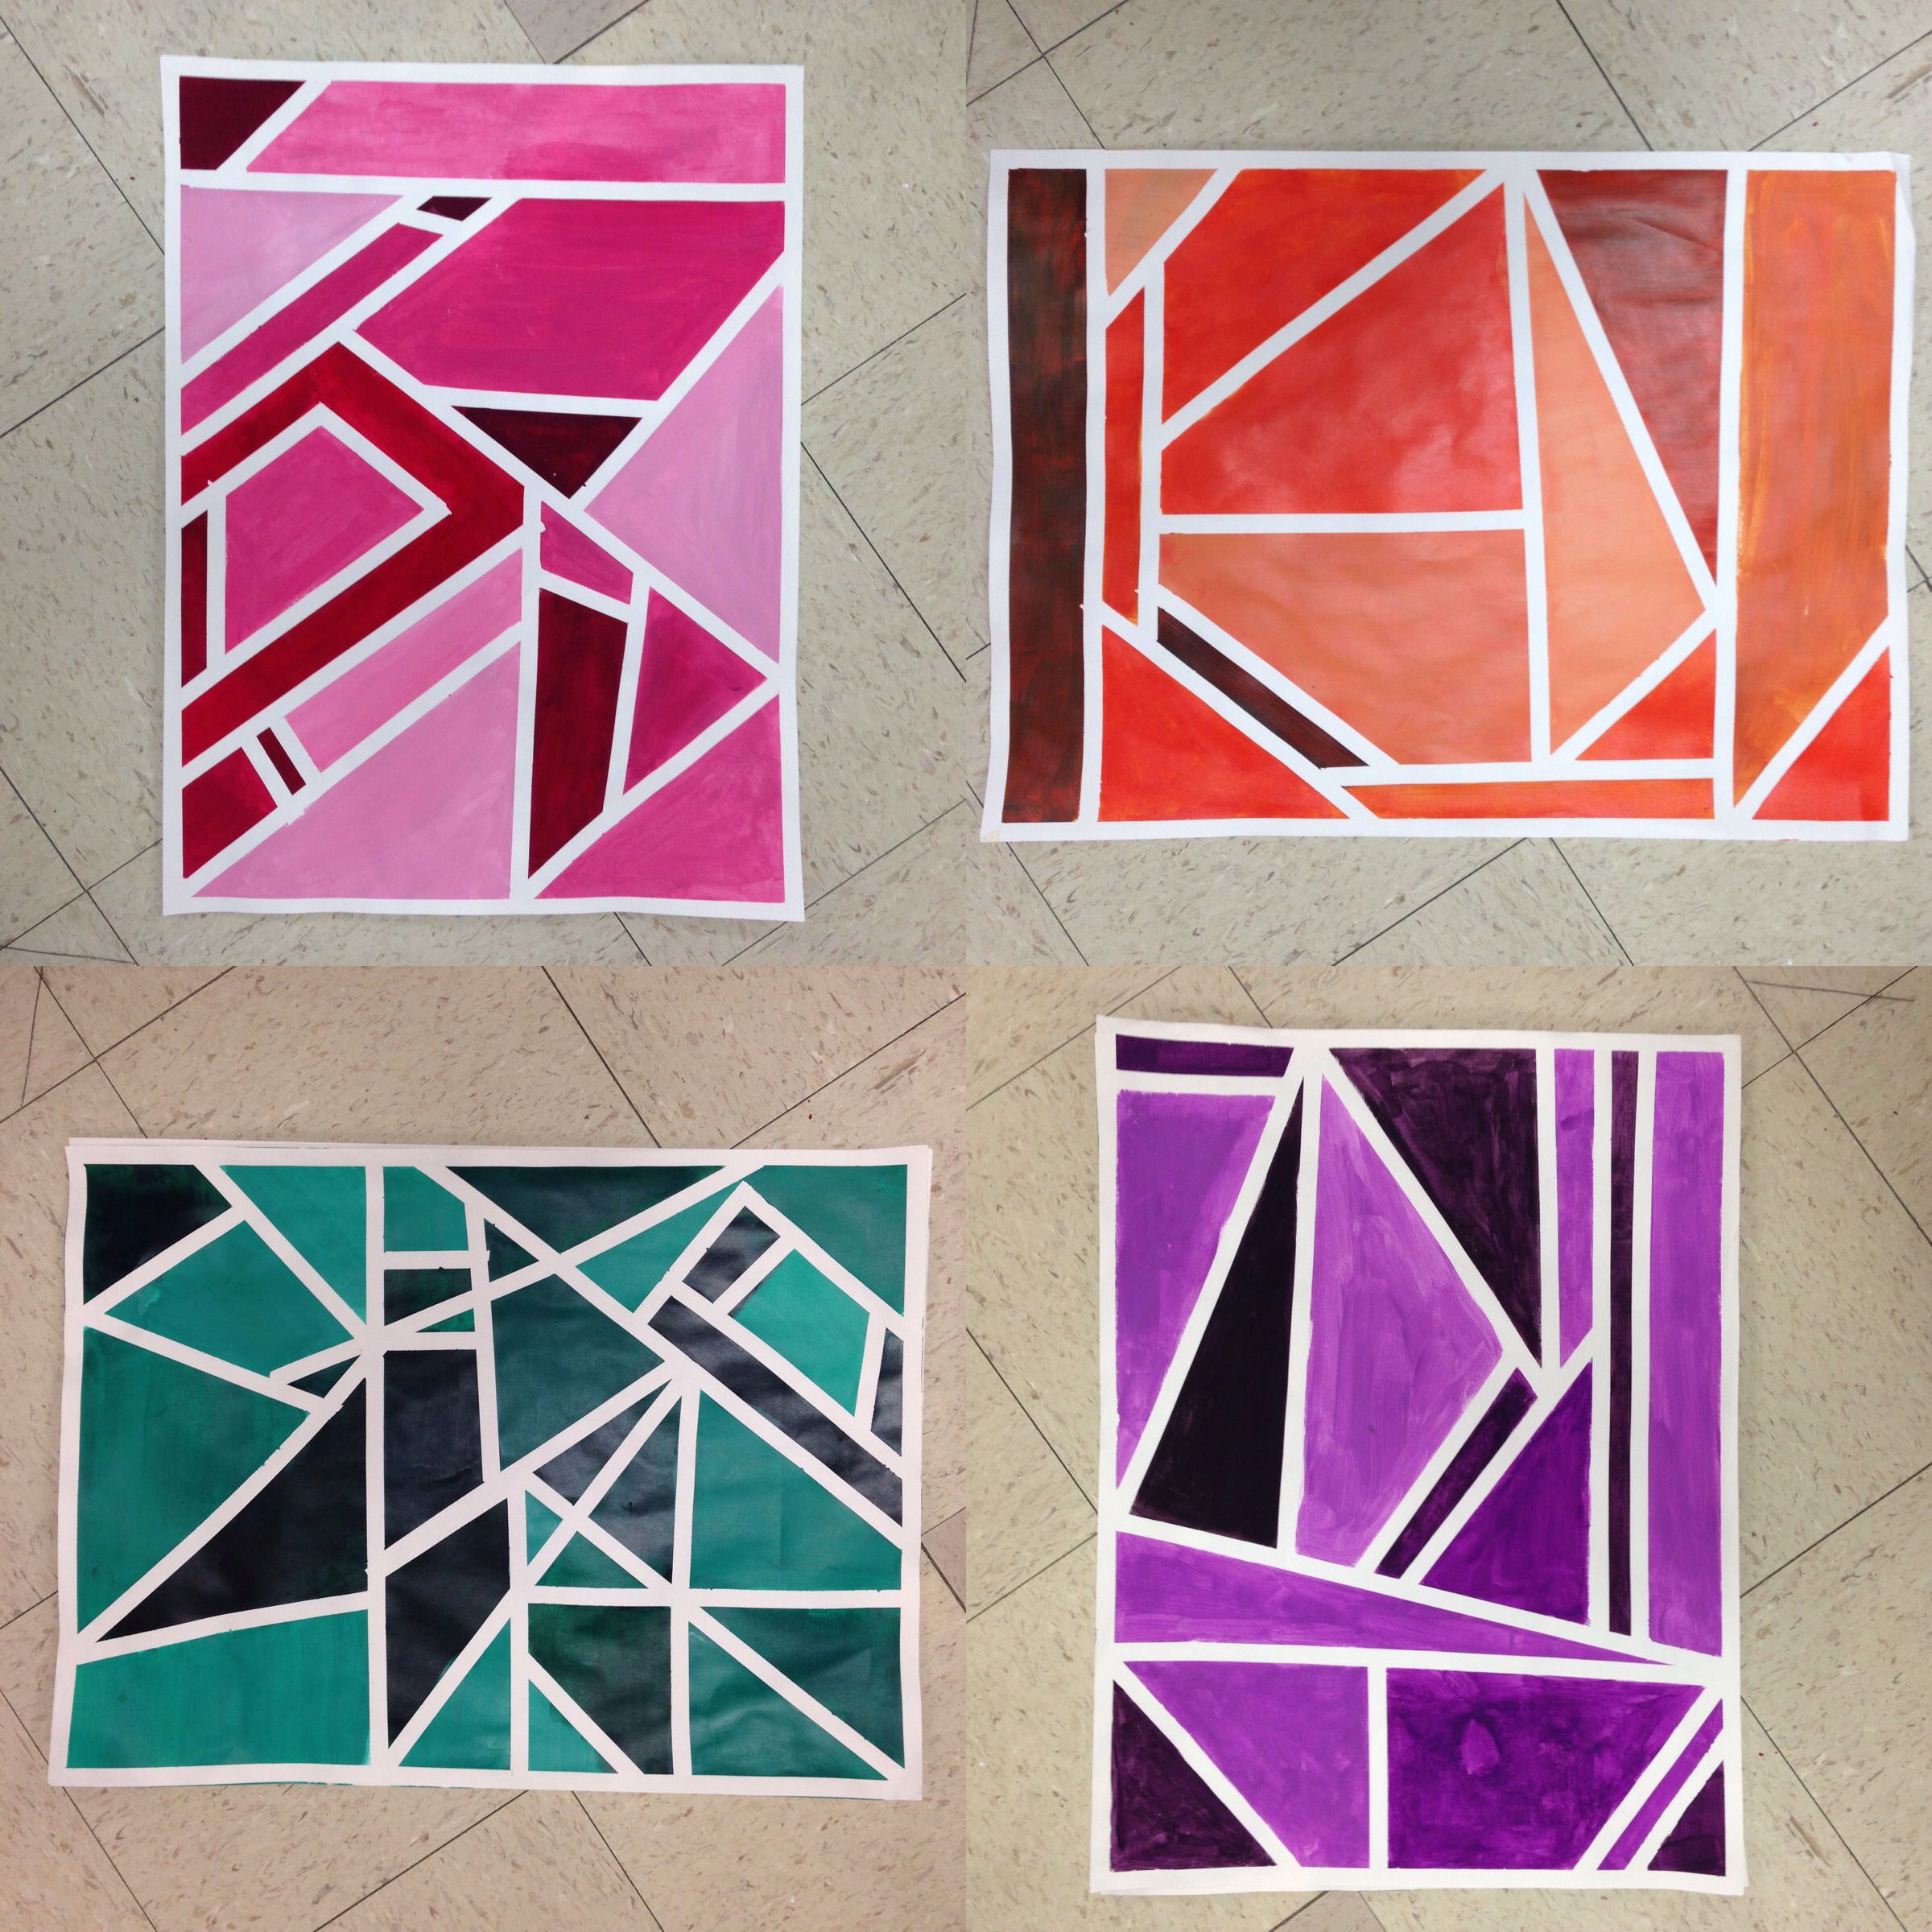 Monochromatic Study With Tape Or Masking Fluid